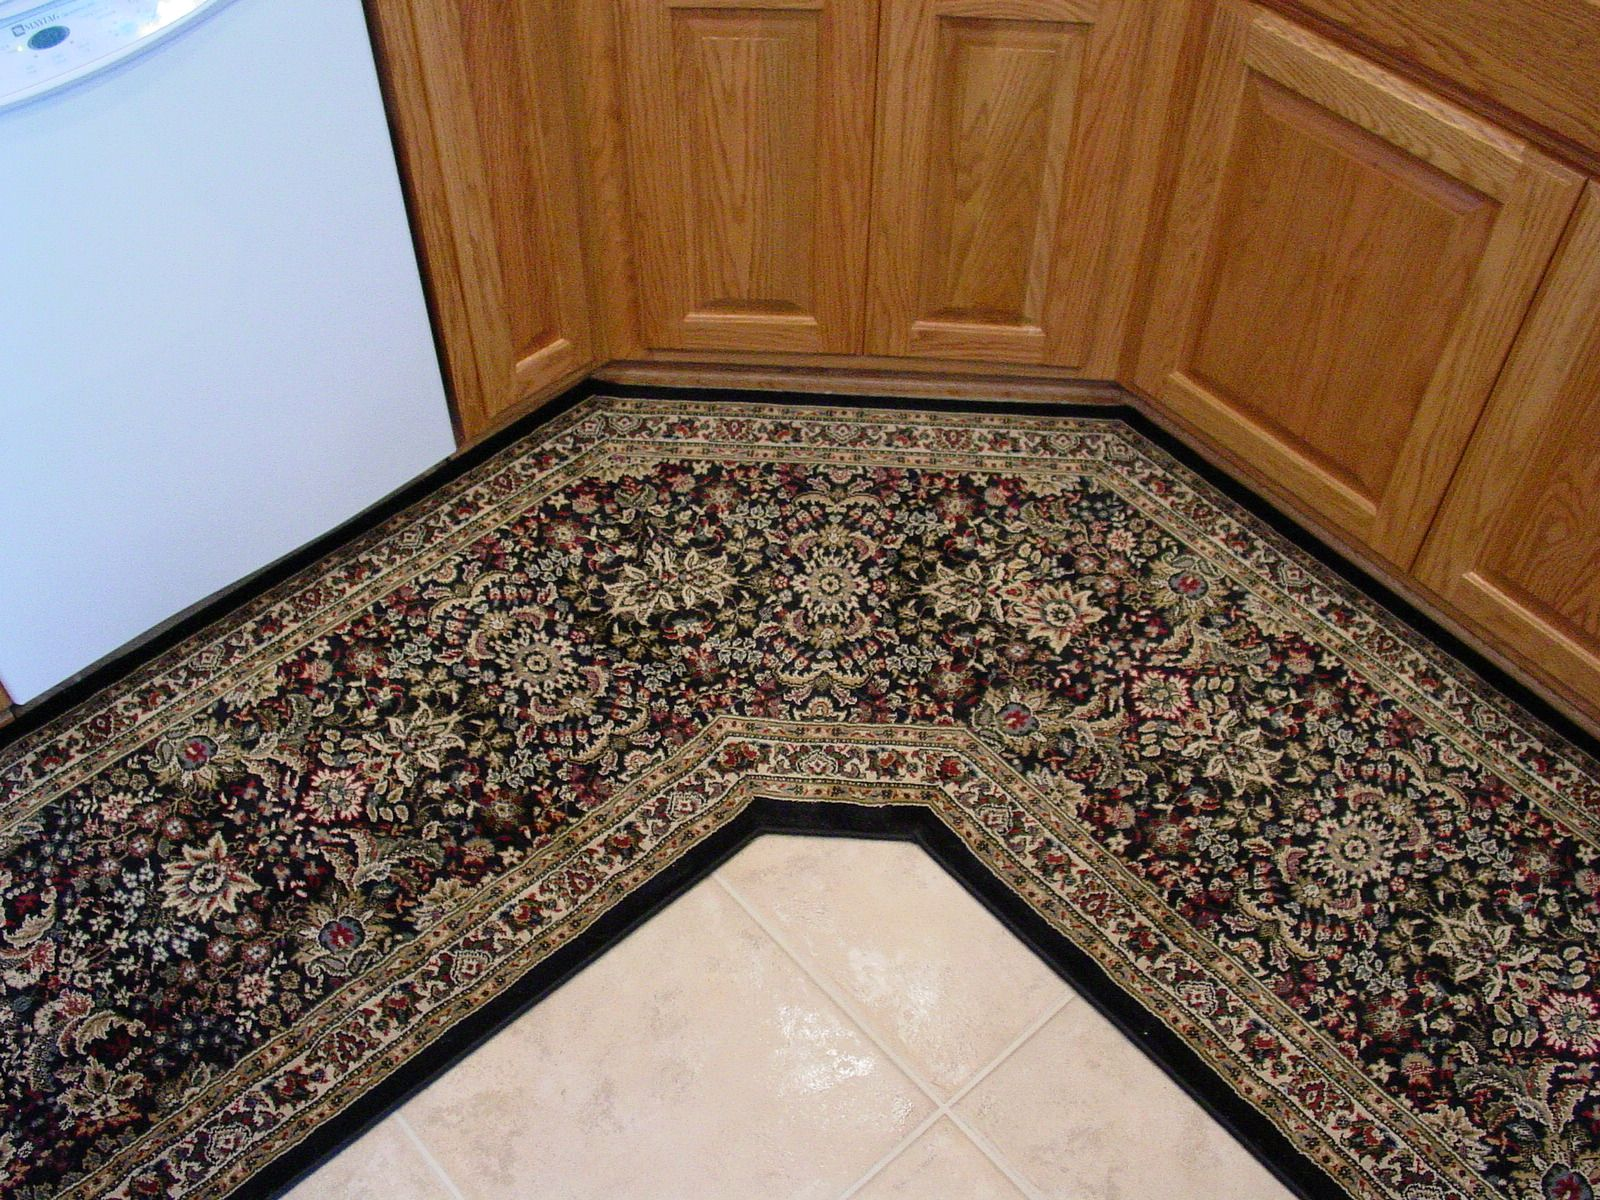 Our Designers At Area Rug Dimensions Can Create Custom Angled Kitchen Runners To Match Your Kitchen Custom Size Y Rug Runner Kitchen Kitchen Runner Rug Runner